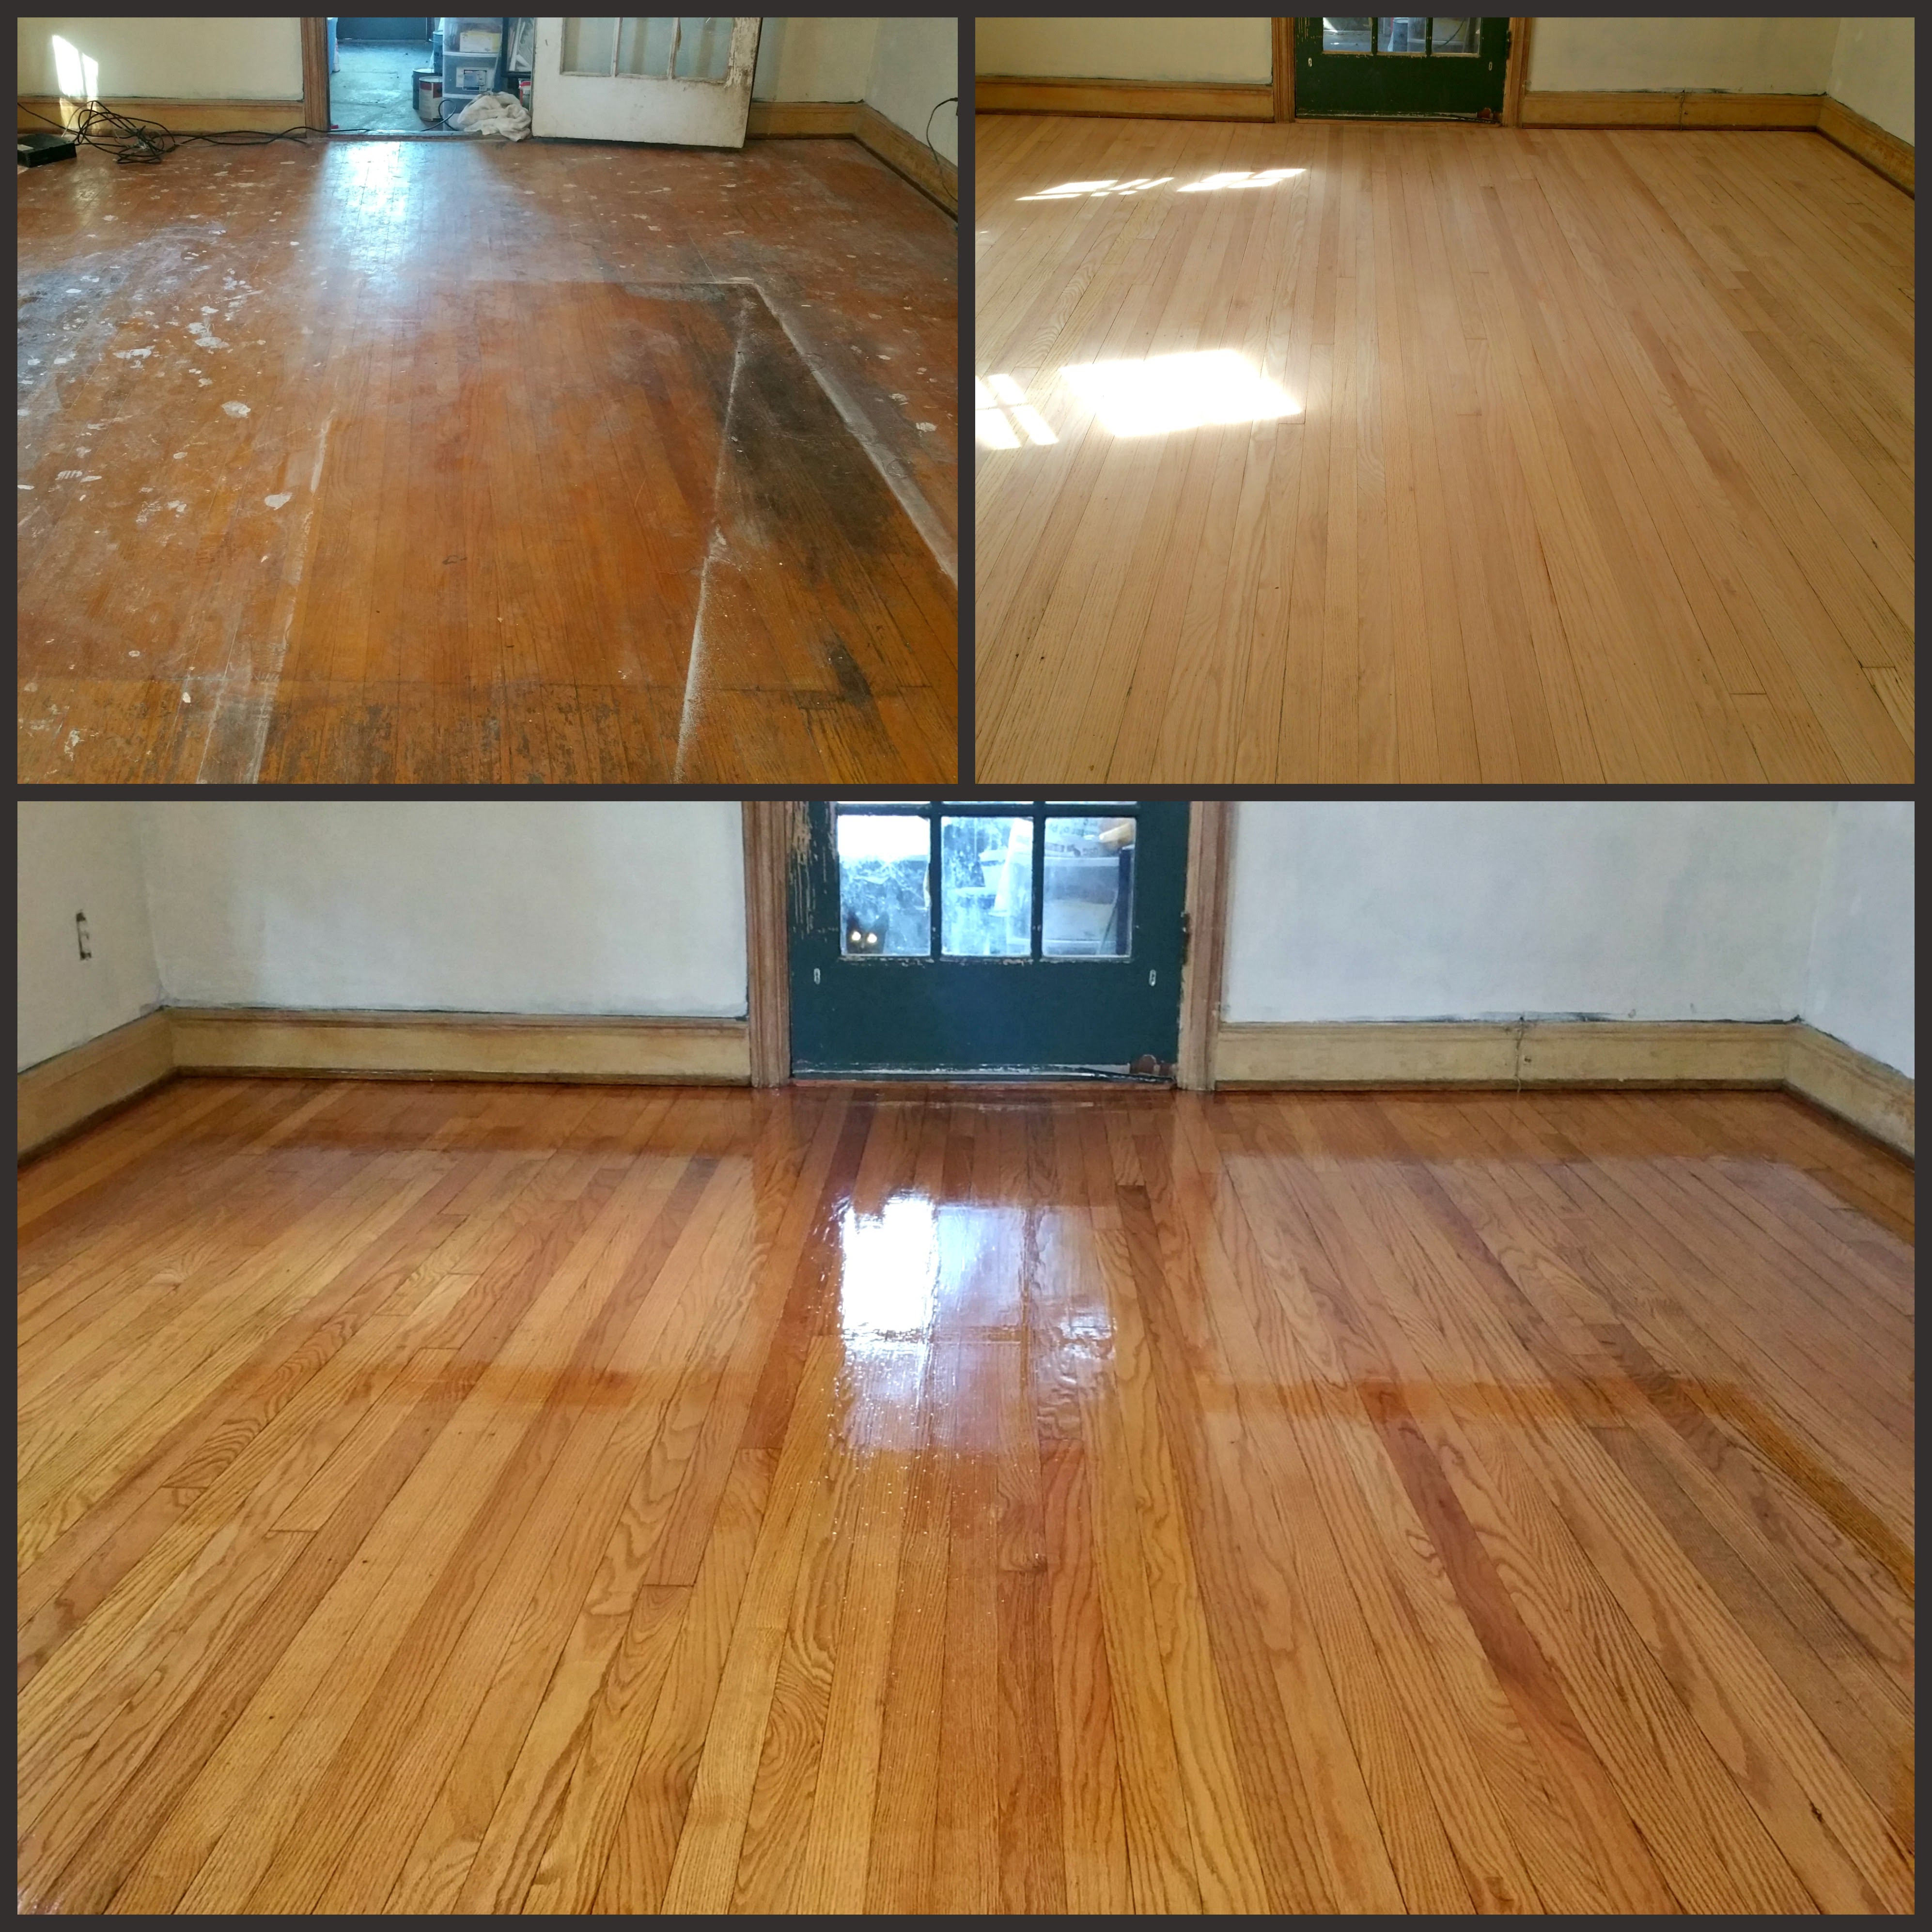 hardwood flooring raleigh of floor refinishing company hardwood floors service by cris floor pertaining to floor refinishing company hardwood floors service by cris